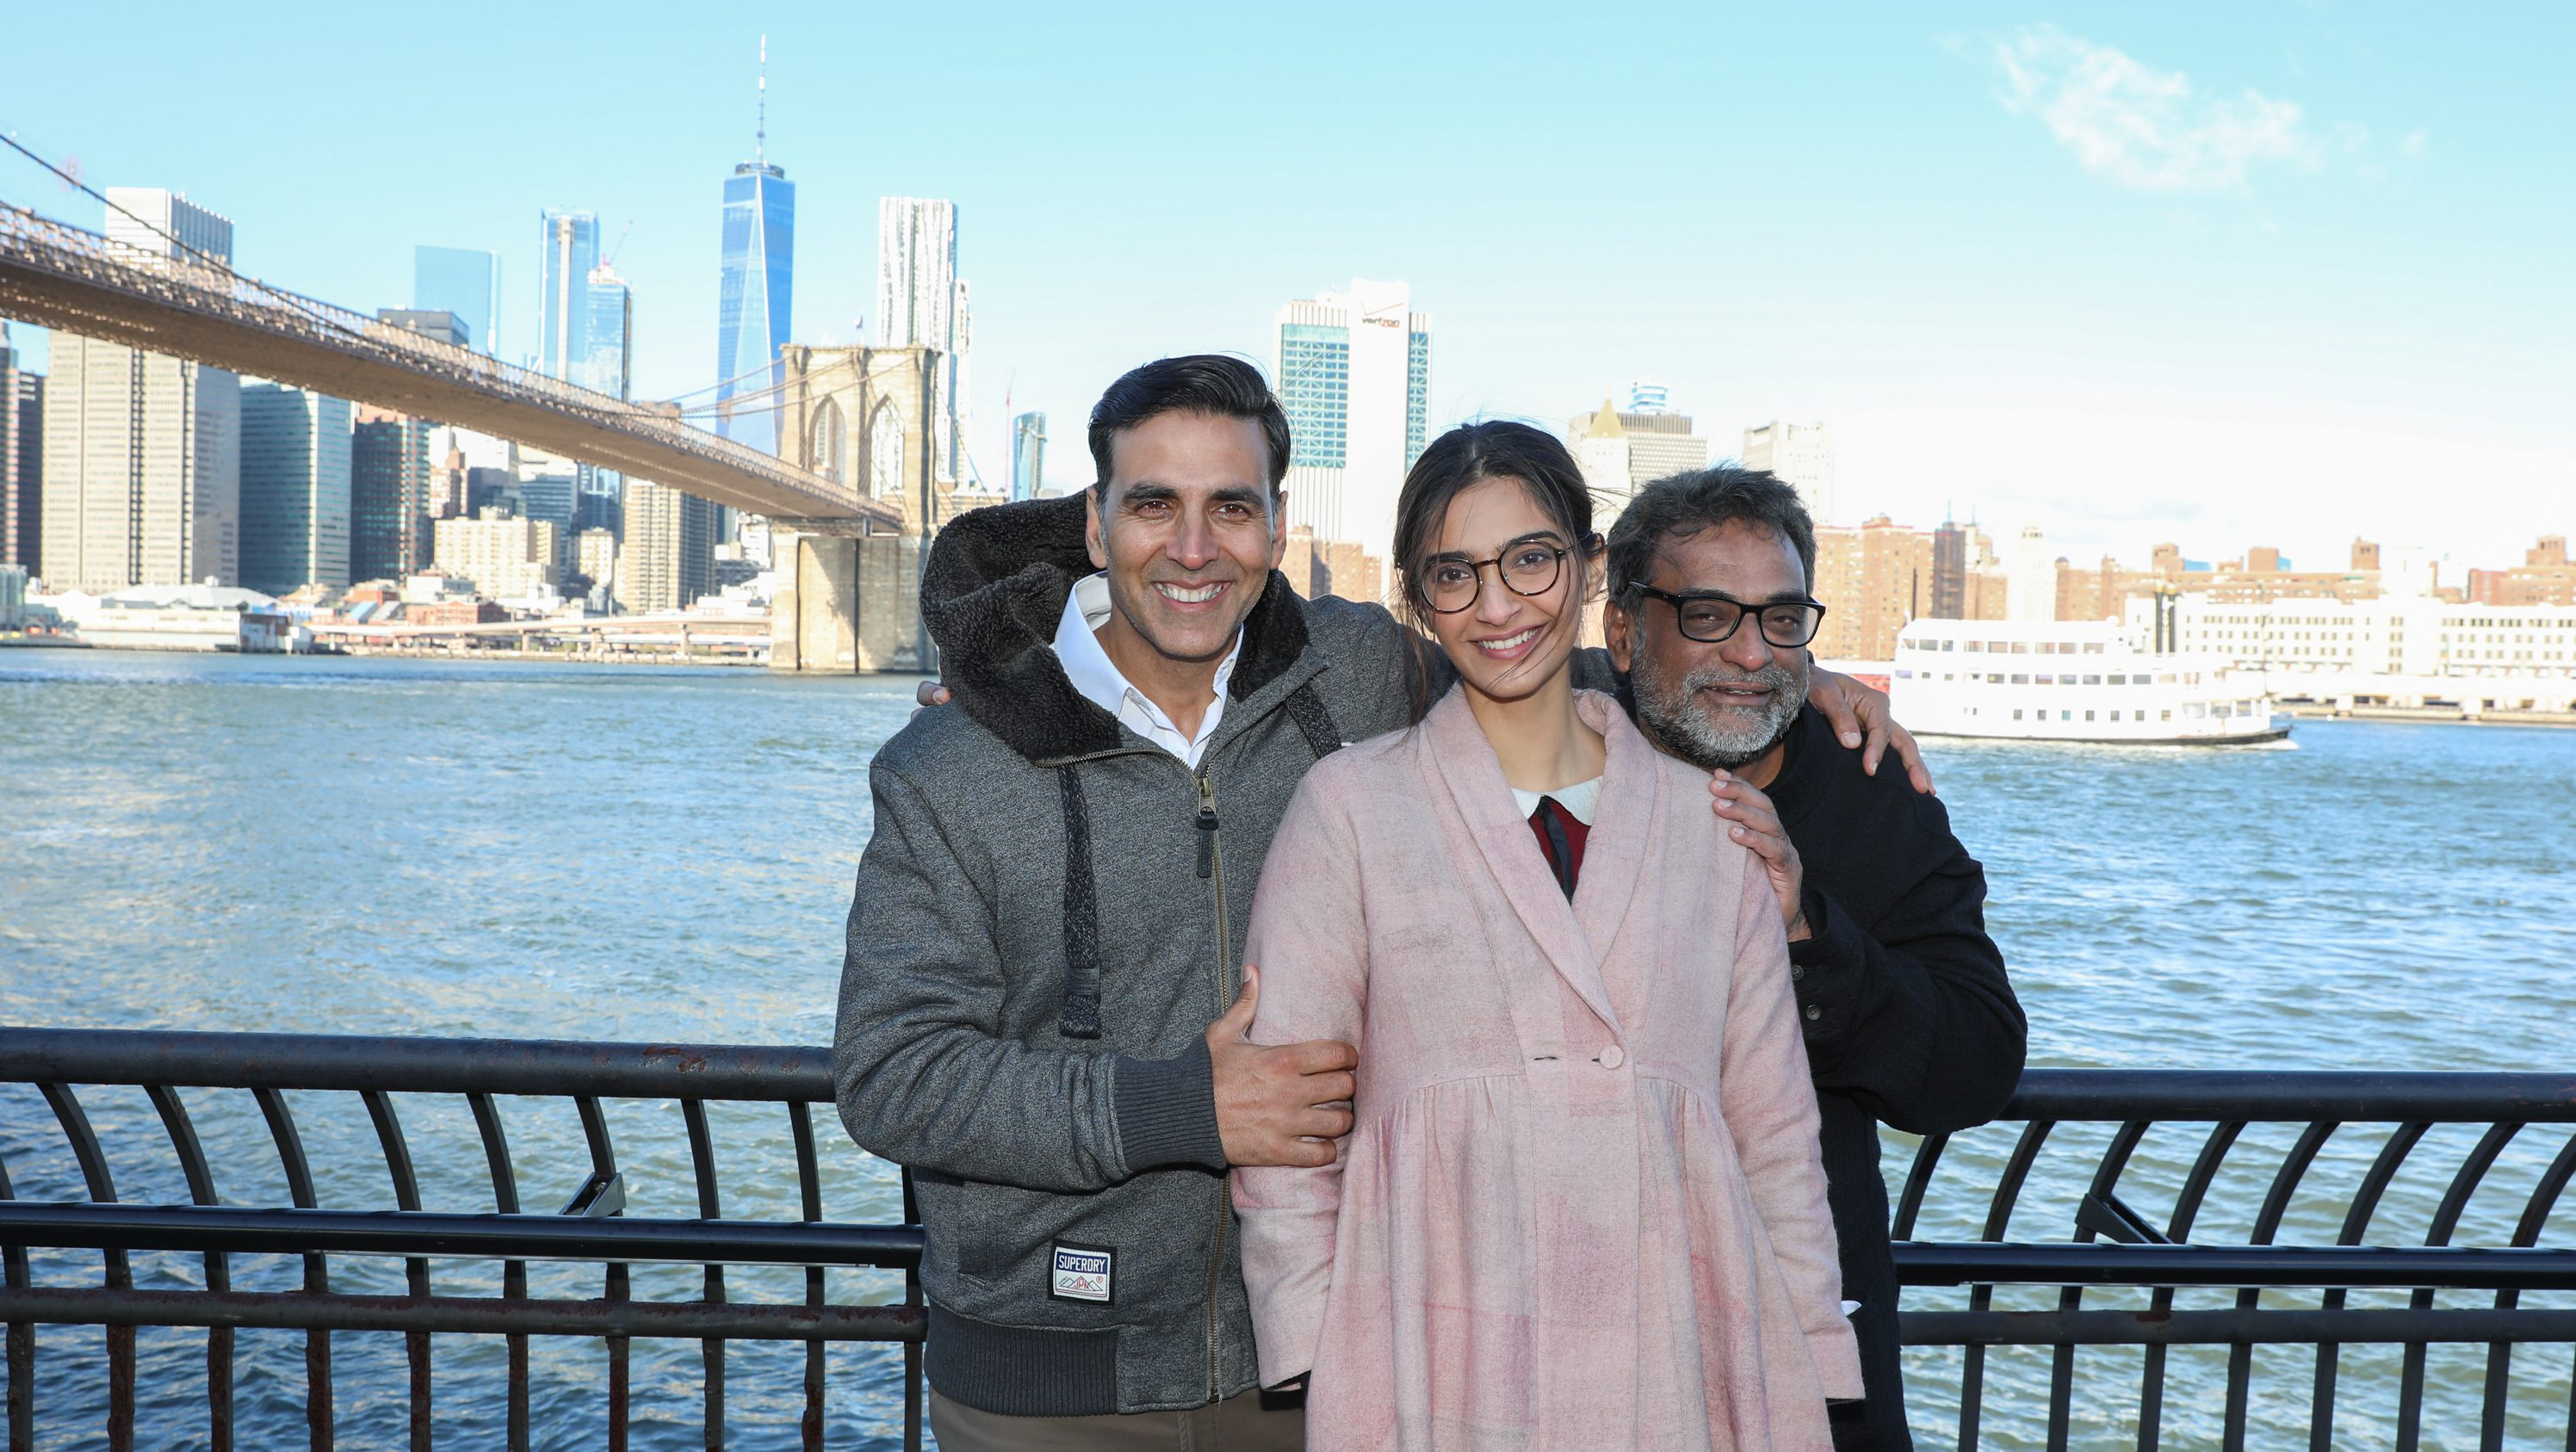 Sony Pictures Padman stars Akshay Kumar, Soman Kapoor and director R. Balki shoot near the Brooklyn Bridge on Friday, Nov. 17, 2017, in Brooklyn, N.Y. (Photo by Amy Sussman/Invision for Sony Pictures/AP Images)